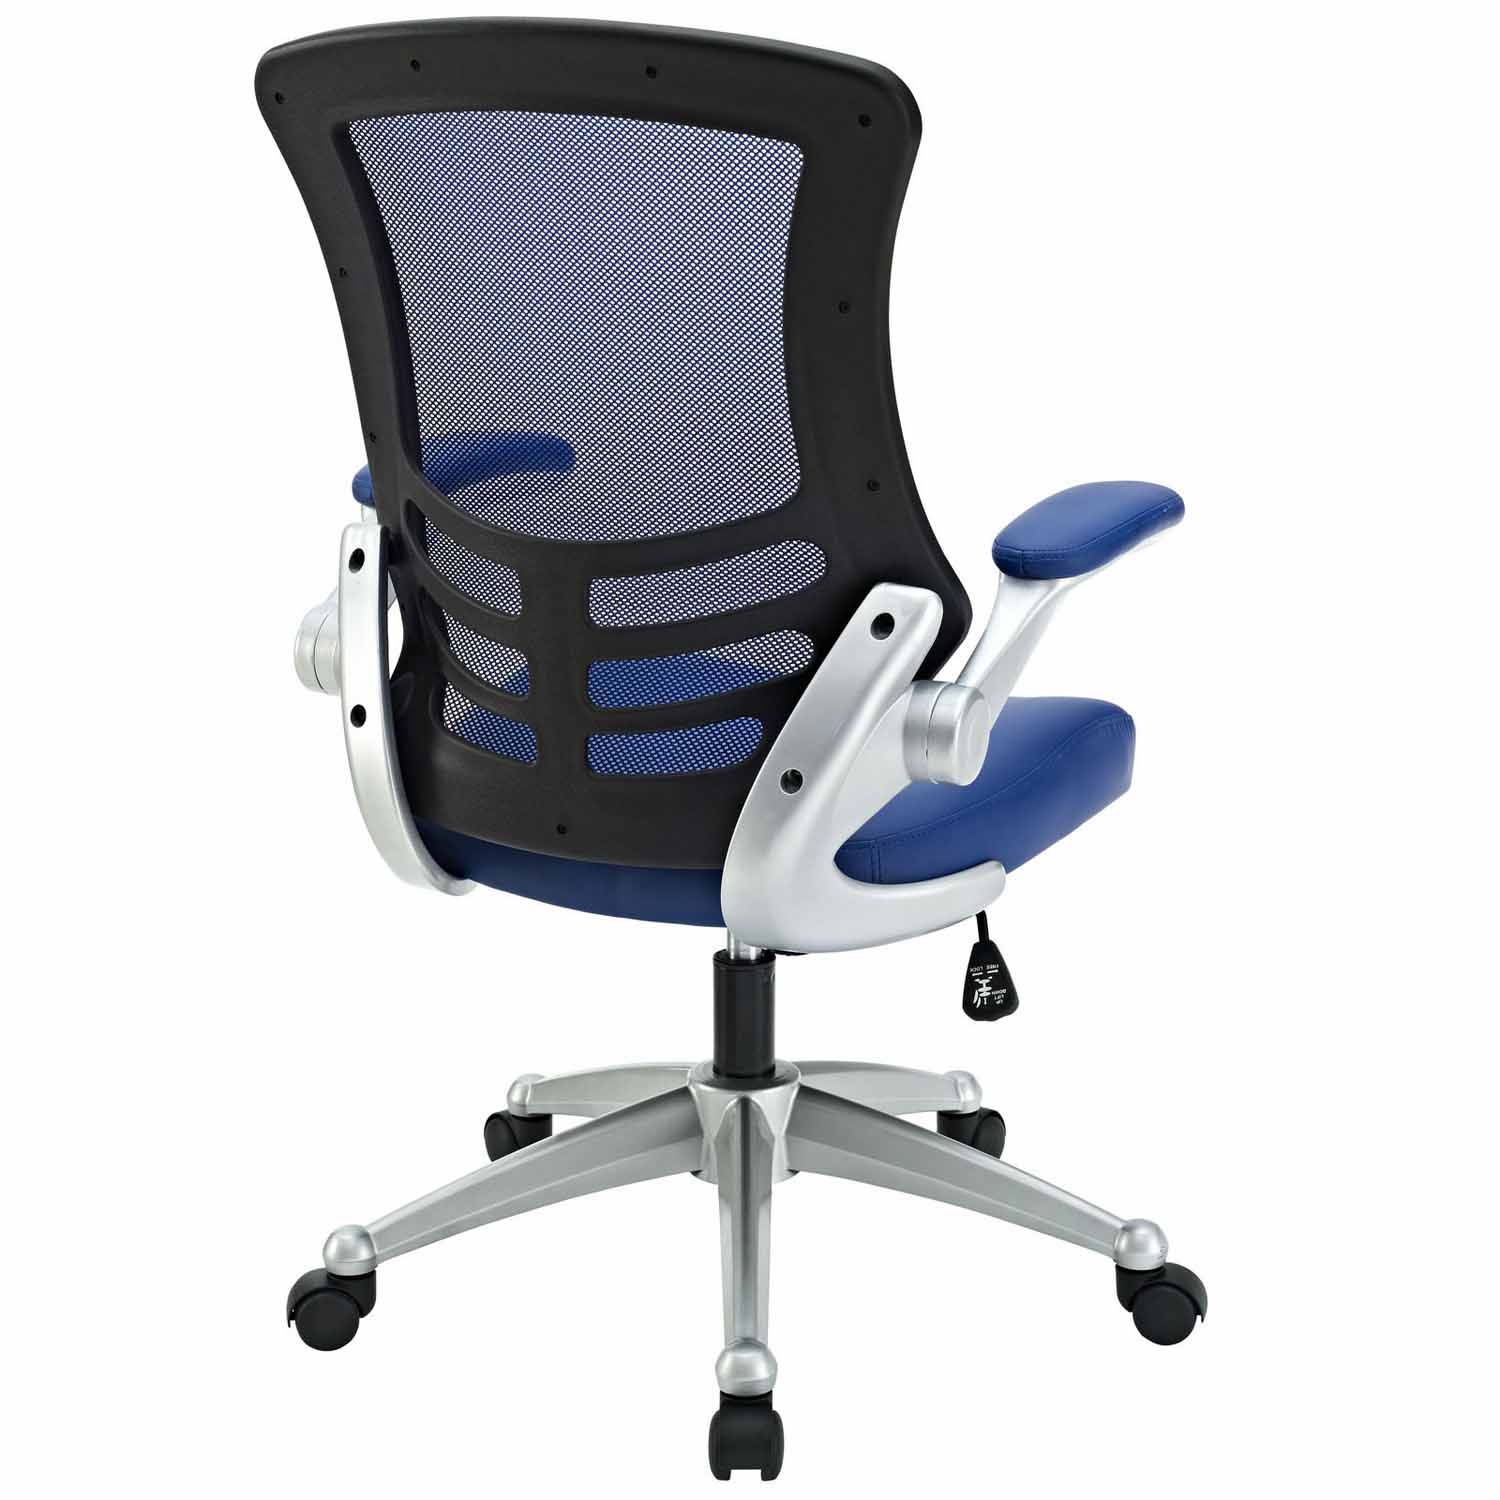 Modway Attainment Office Chair - Blue